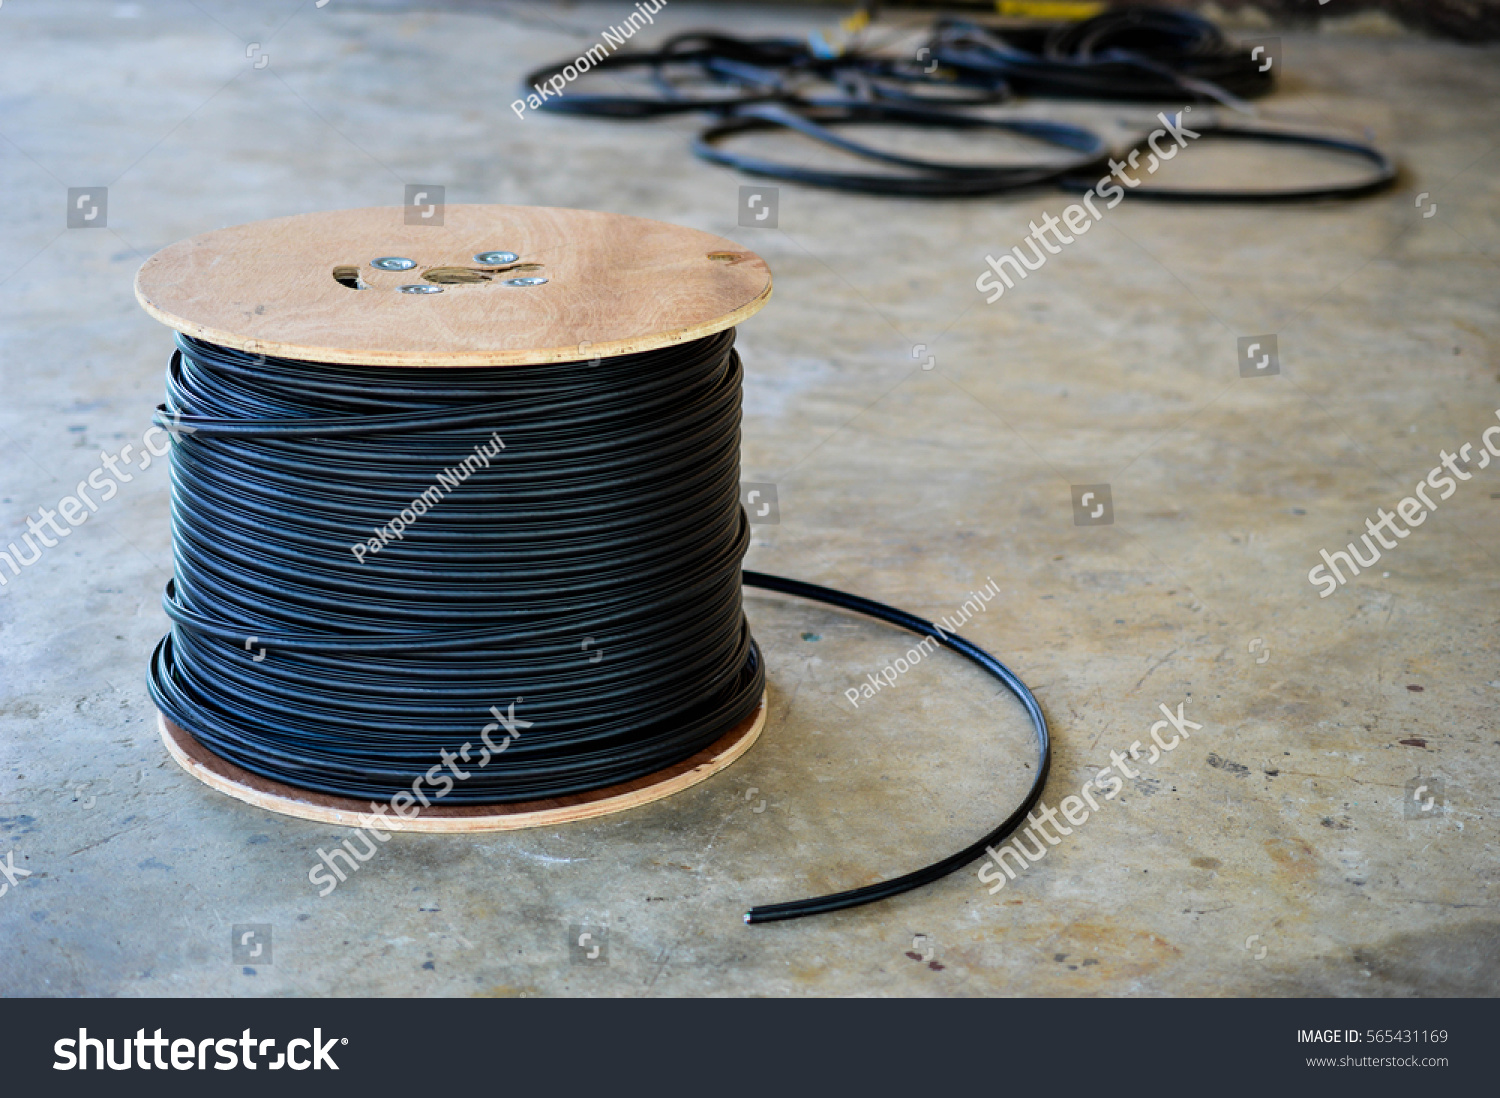 Spools Of Copper Electrical Wire Office Visio For Mac Mile 14gauge Galvanized Electric Fence Wire317774a The Home Depot Black Cable Coil Spool Stock Photo Royalty Free In 565431169